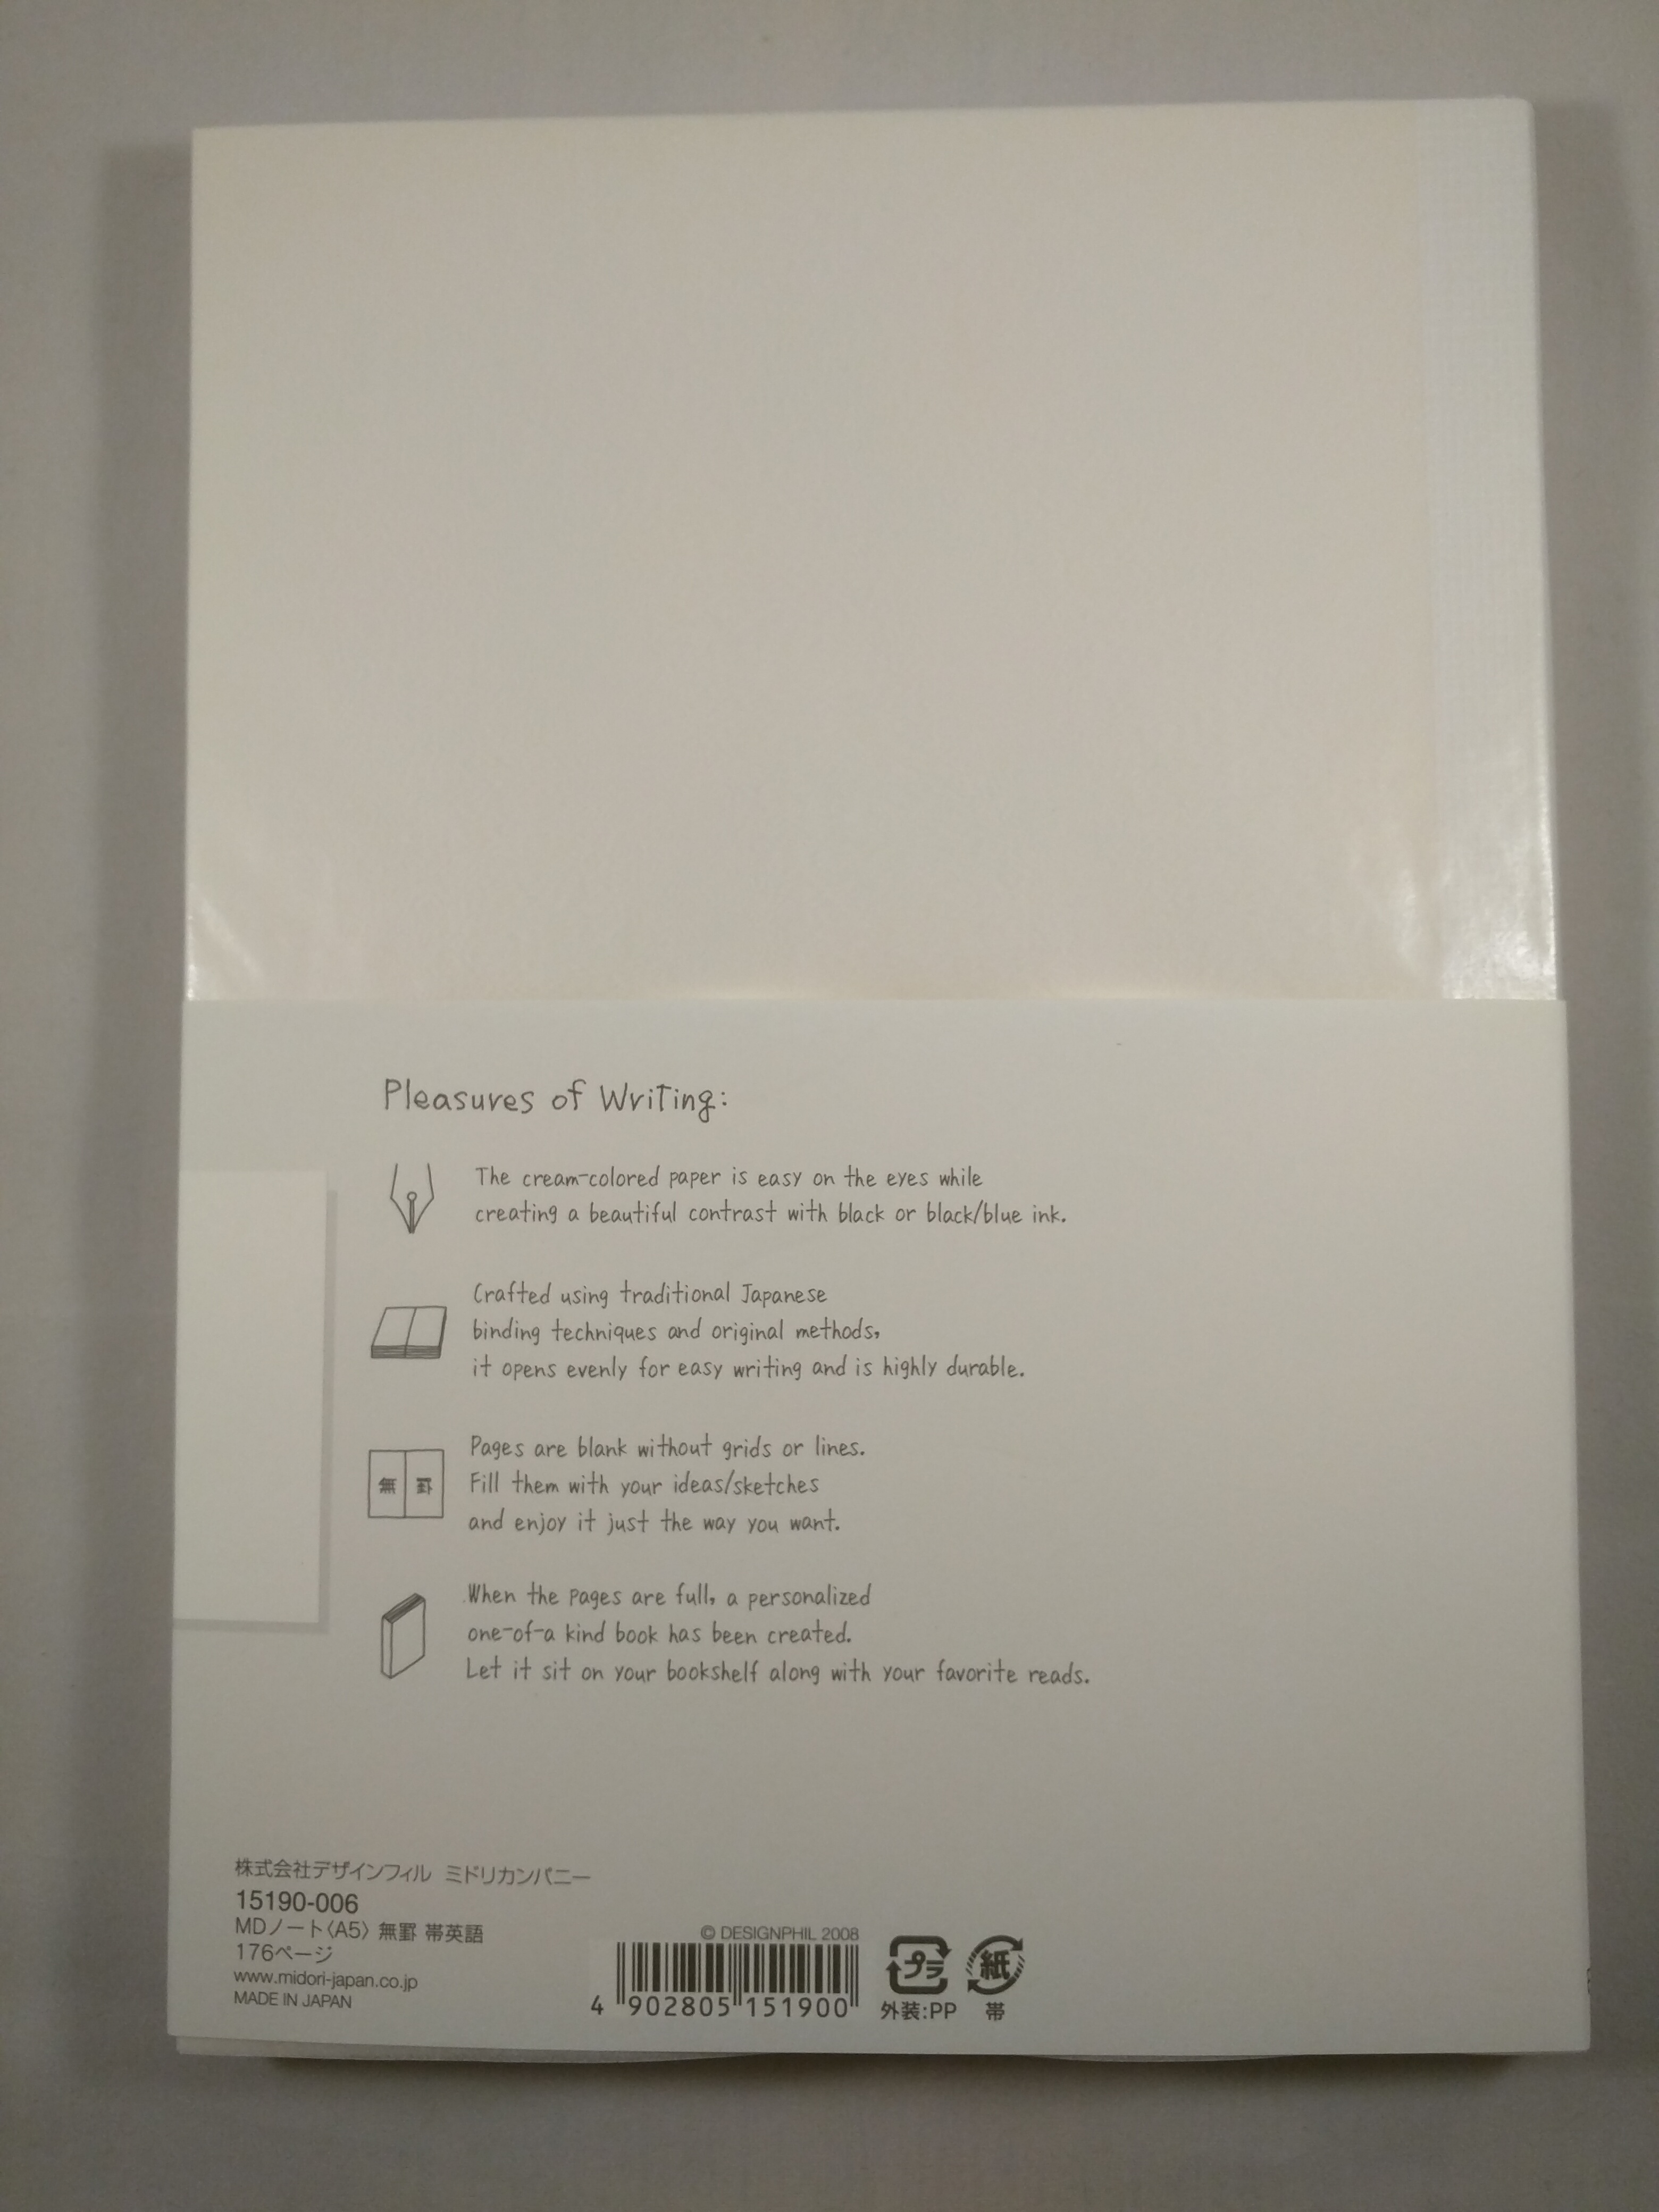 Midori MD notebook packaging rear view